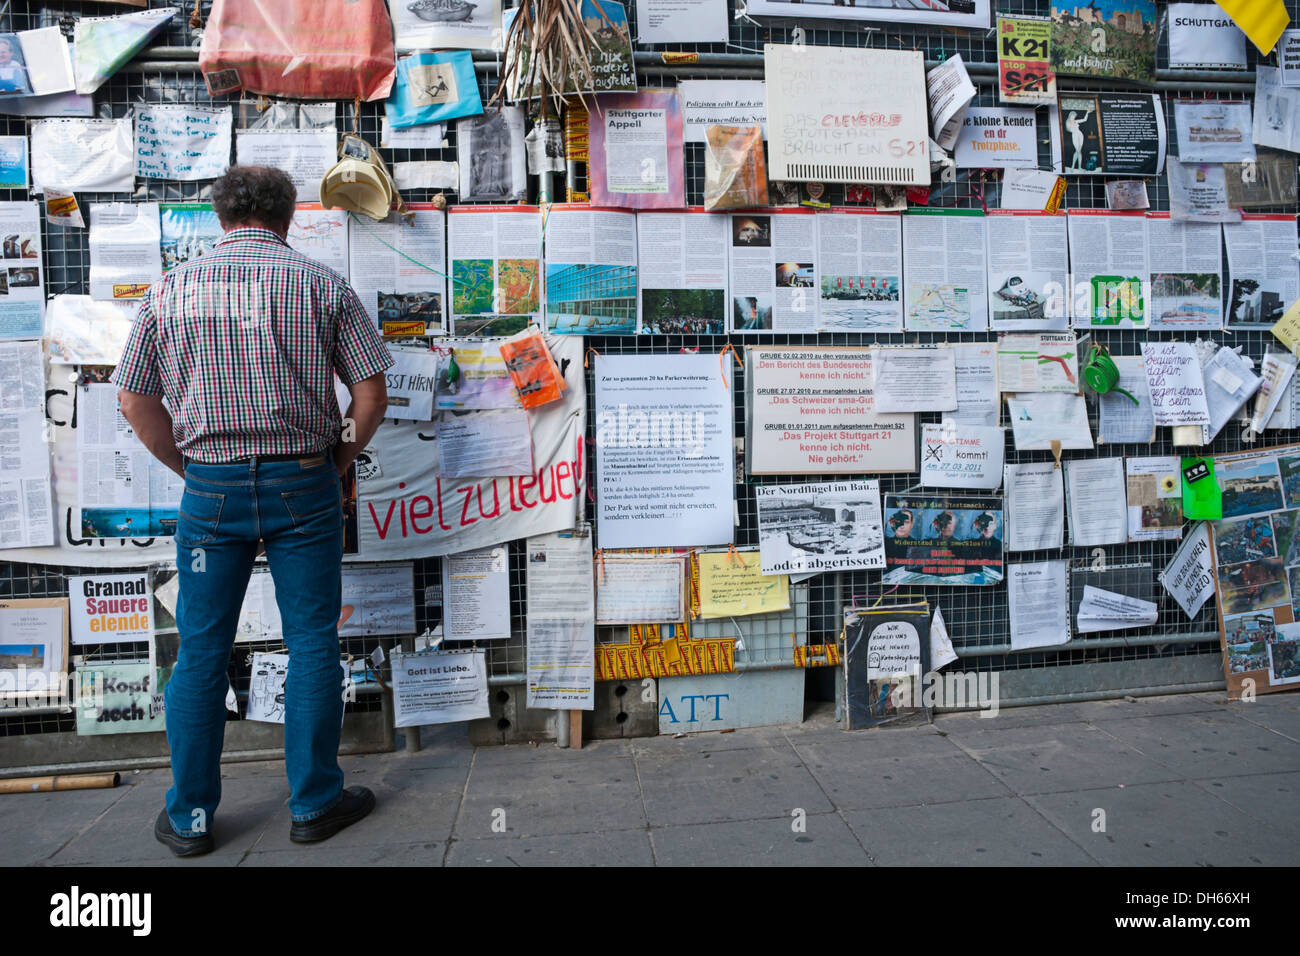 Stuttgart 21 building project, passerby and protest posters on the fence of the demolished north wing of Stuttgart - Stock Image